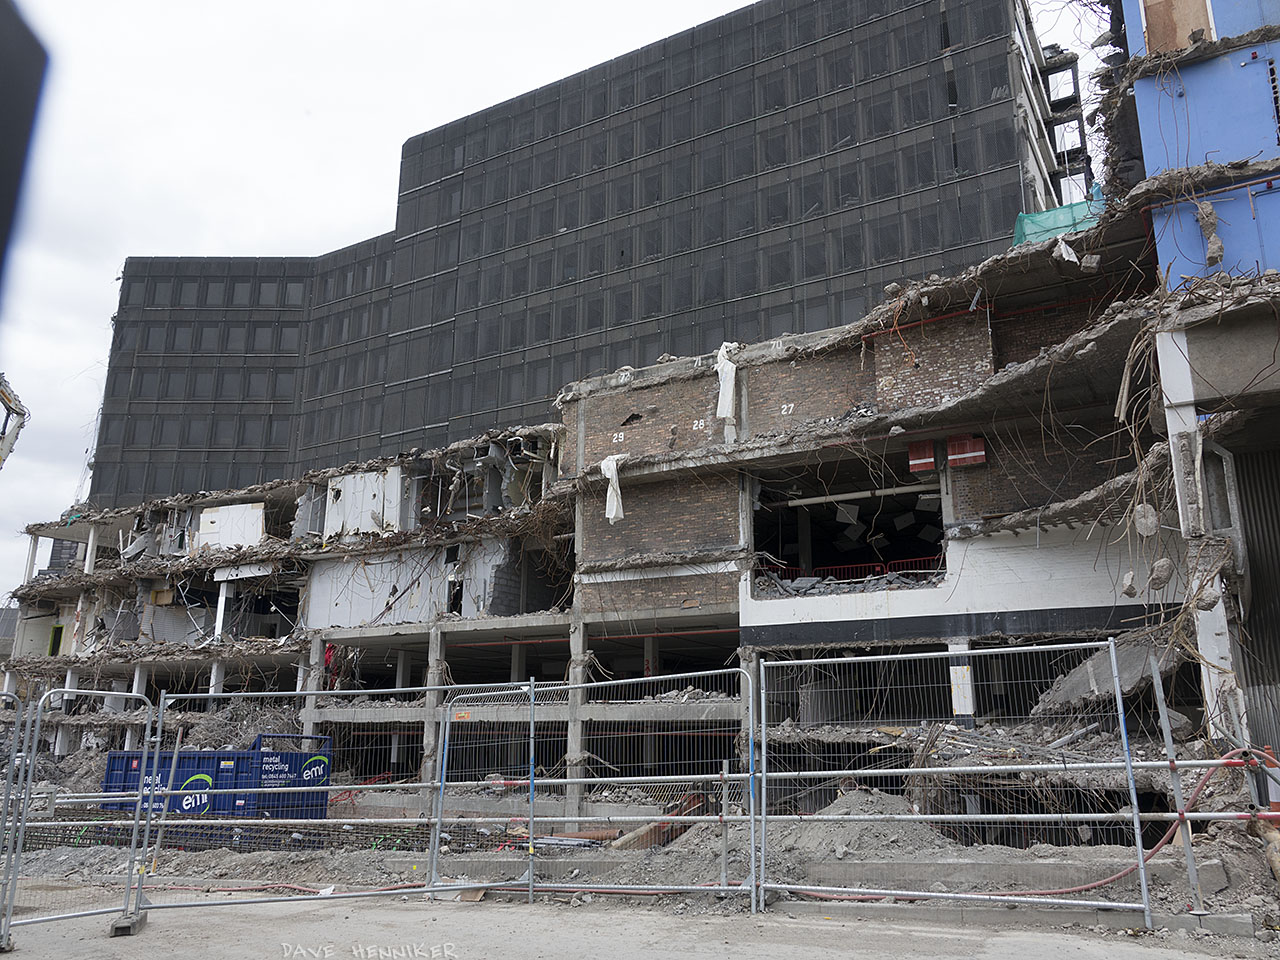 April 2017: Demolition continues at St James Centre